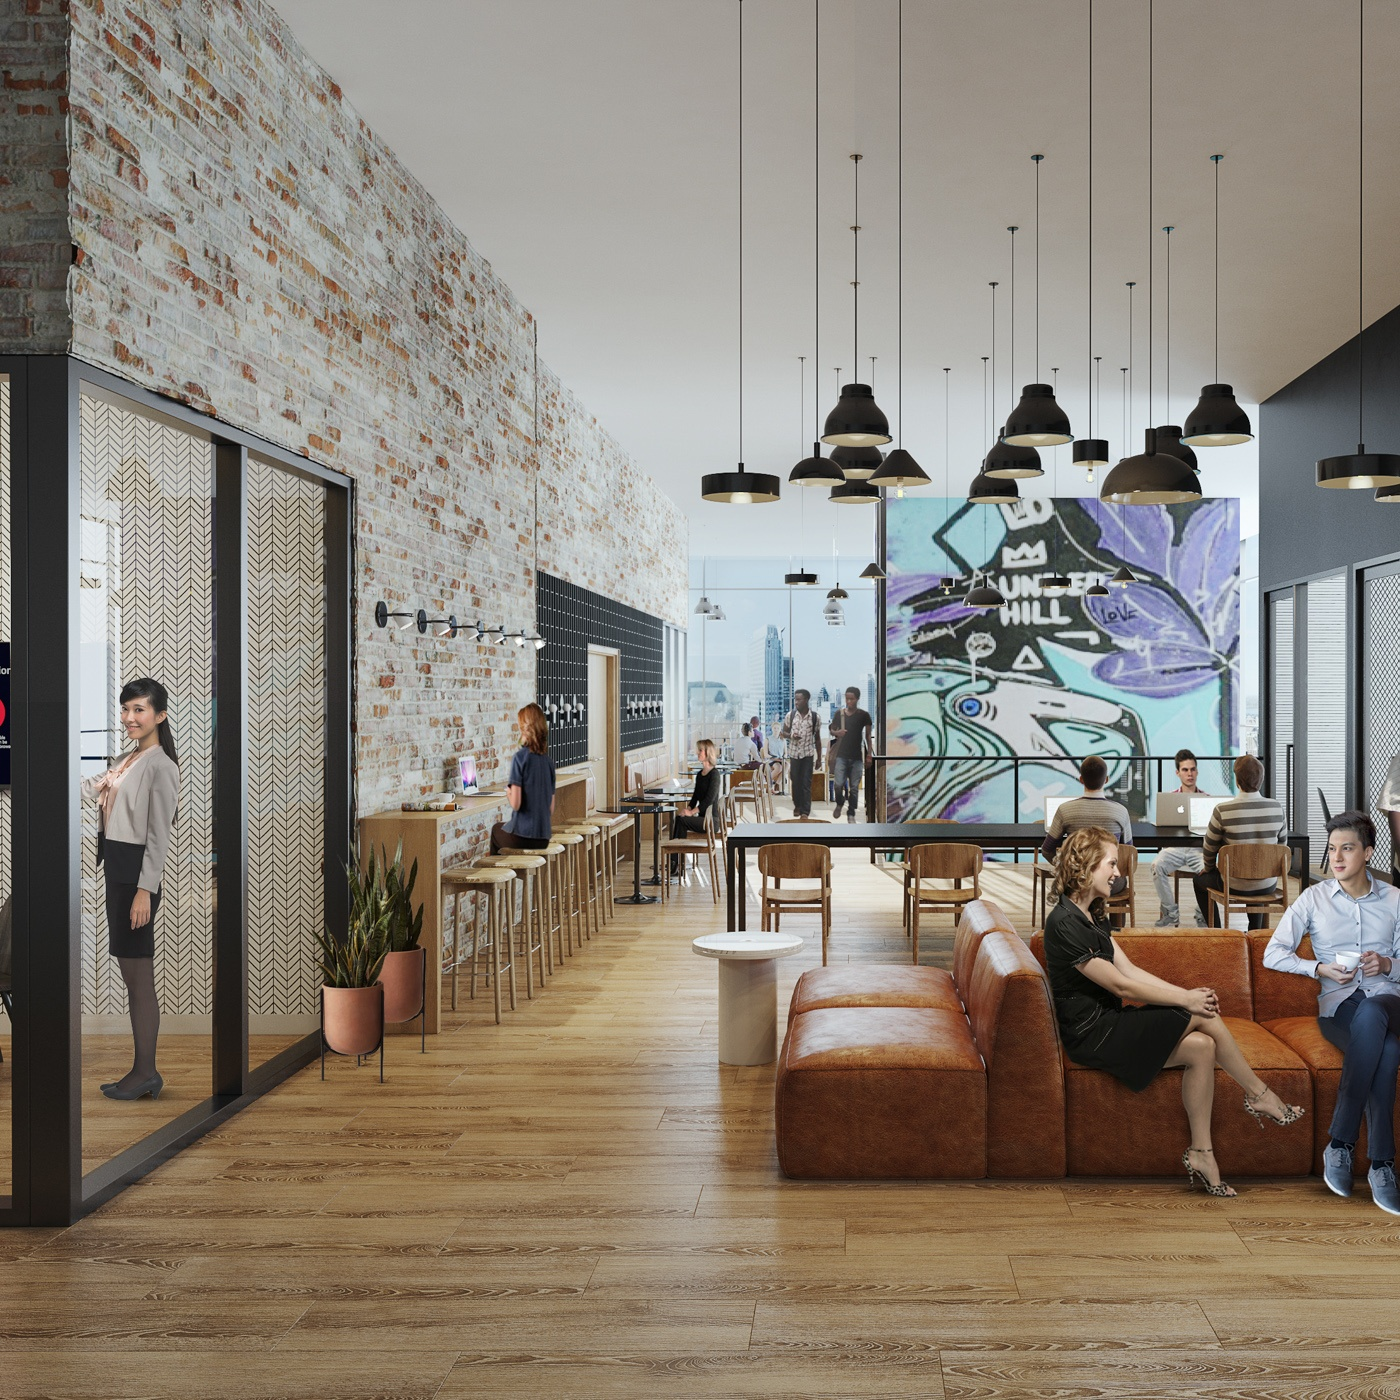 X Oakland coworking space with residents socializing on sofas and working at community desks